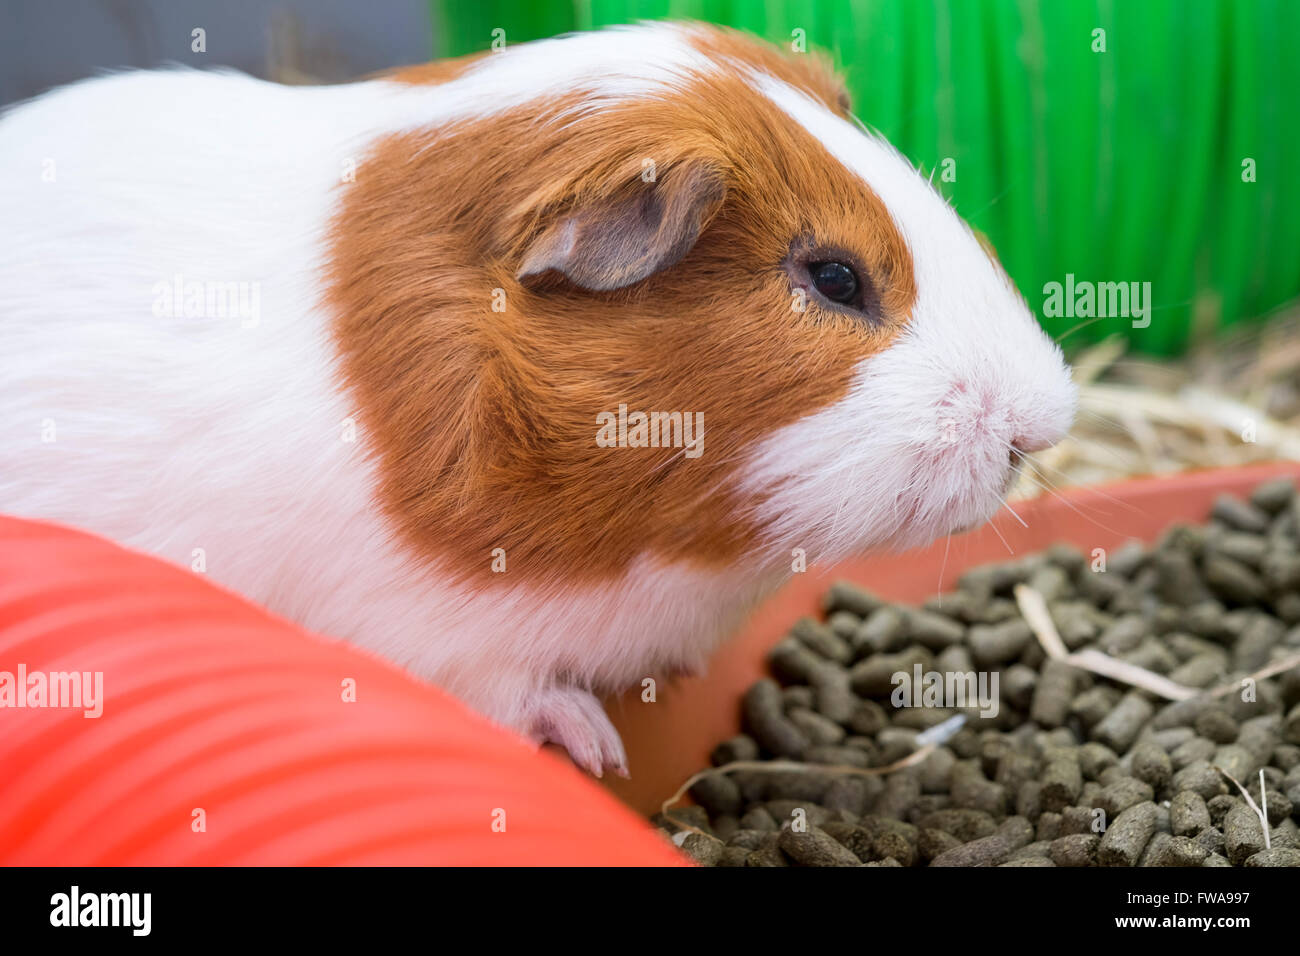 Guinea Pig in a cage, UK. - Stock Image